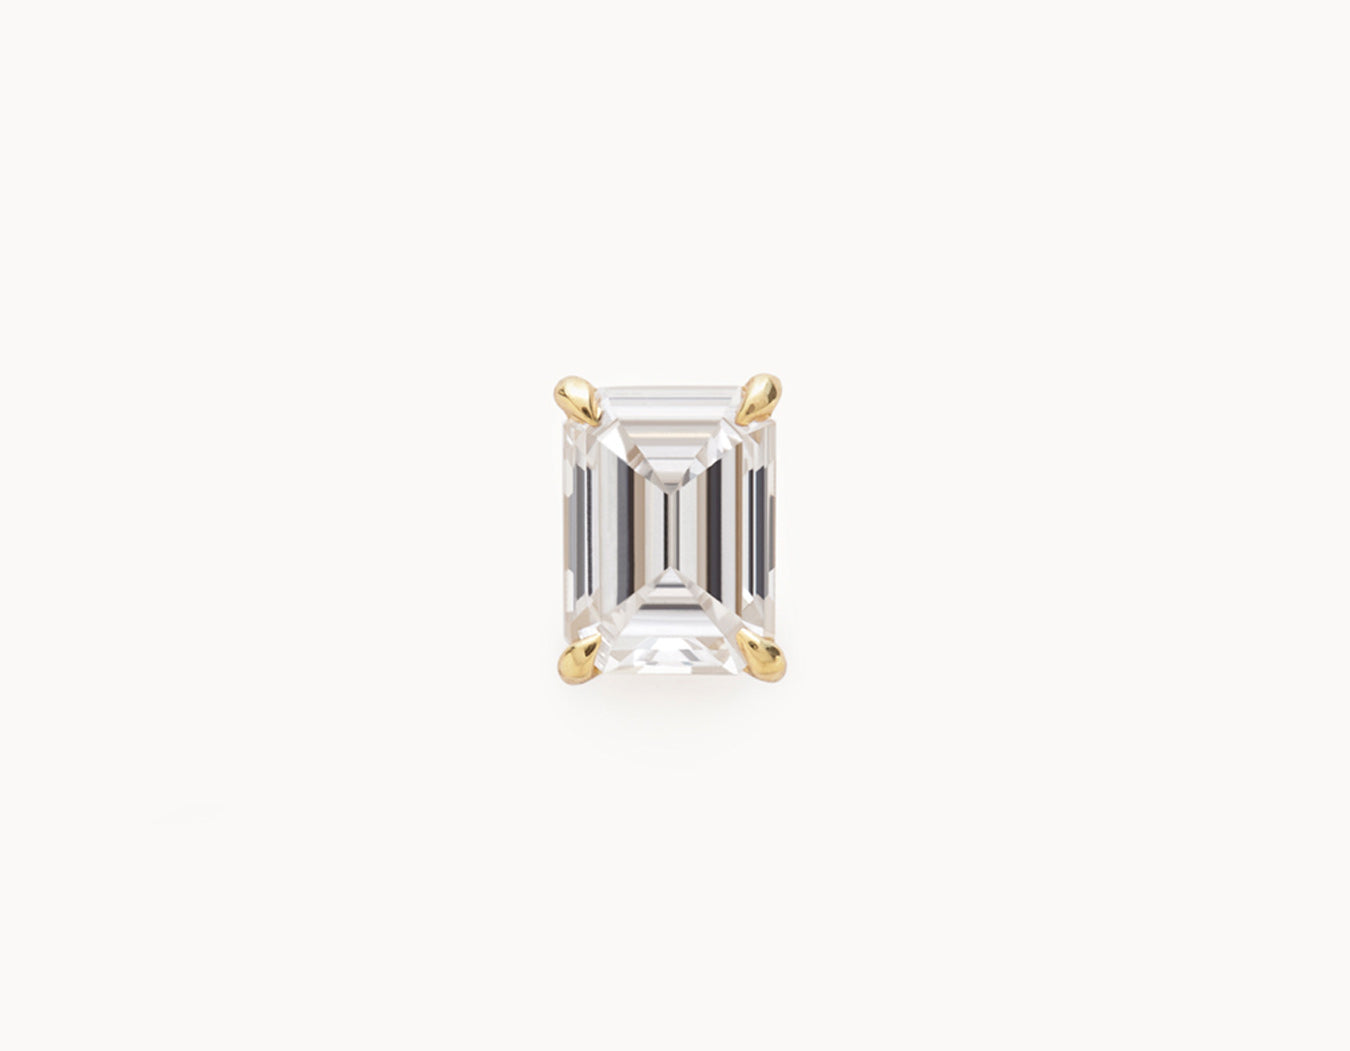 platinum diamond a french in gold white emerald cut engagment pave stem pav enr halo ring engagement step